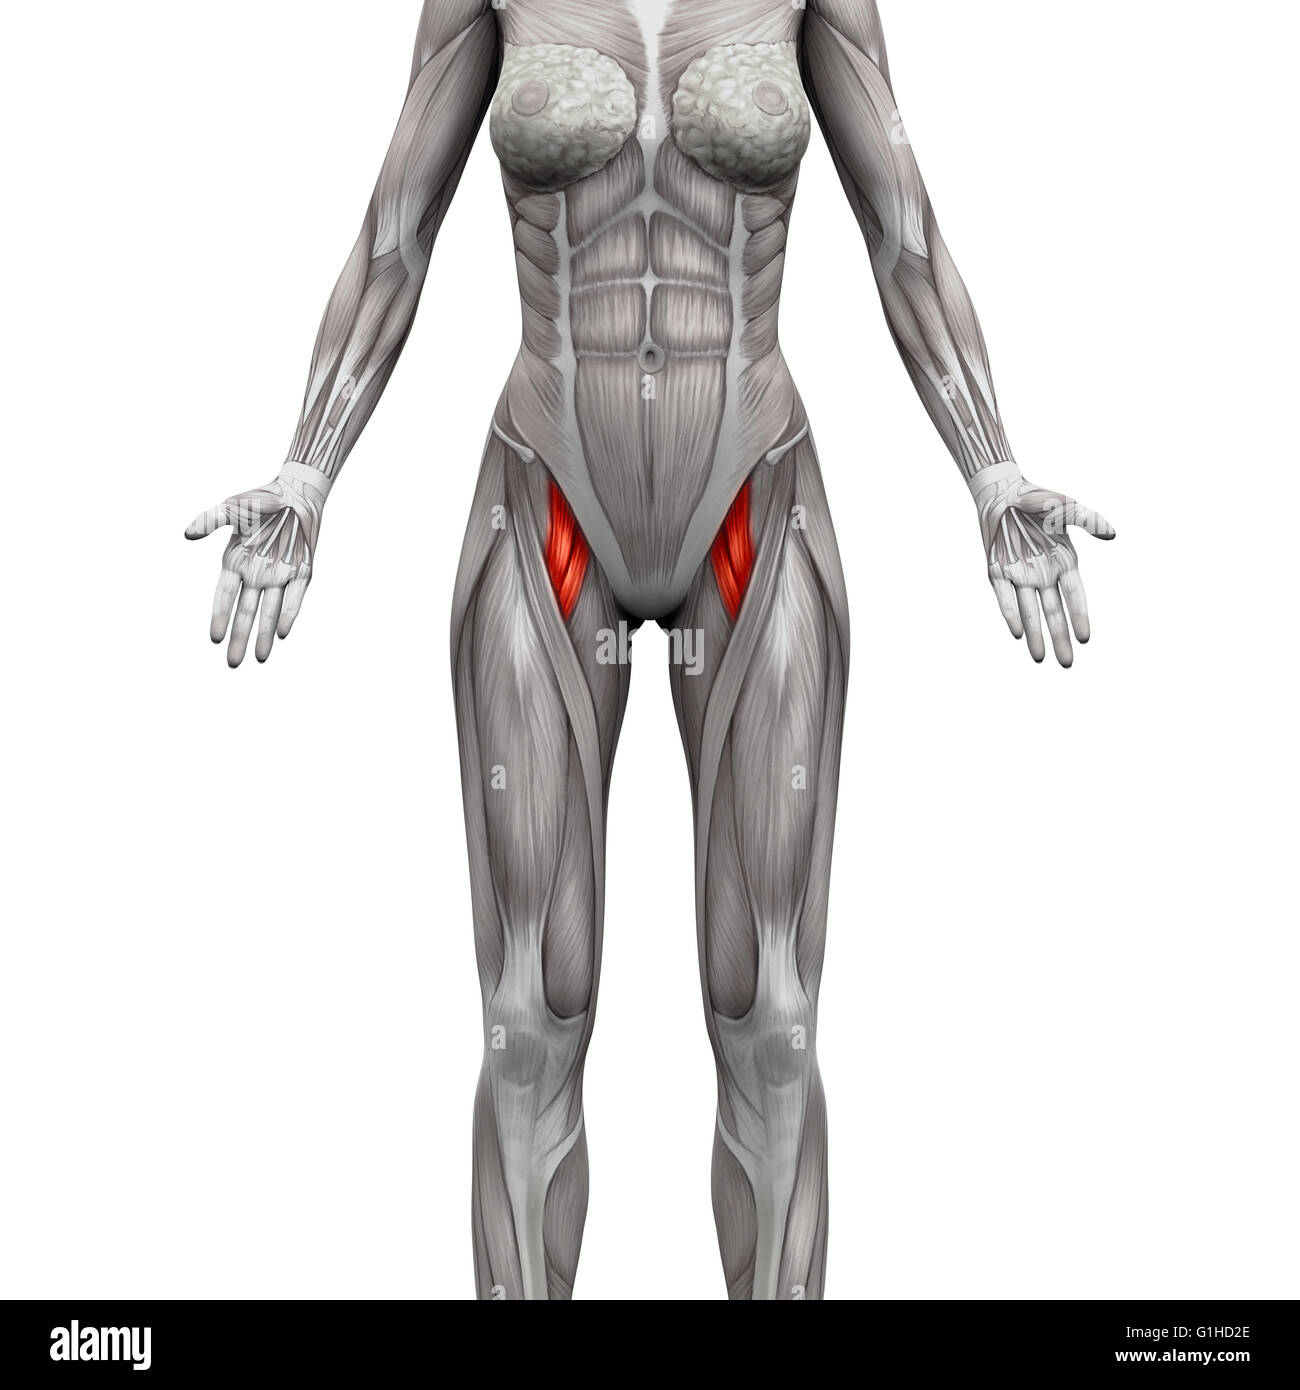 Adductor Brevis and Adductor Longus Muscle - Anatomy Muscles ...